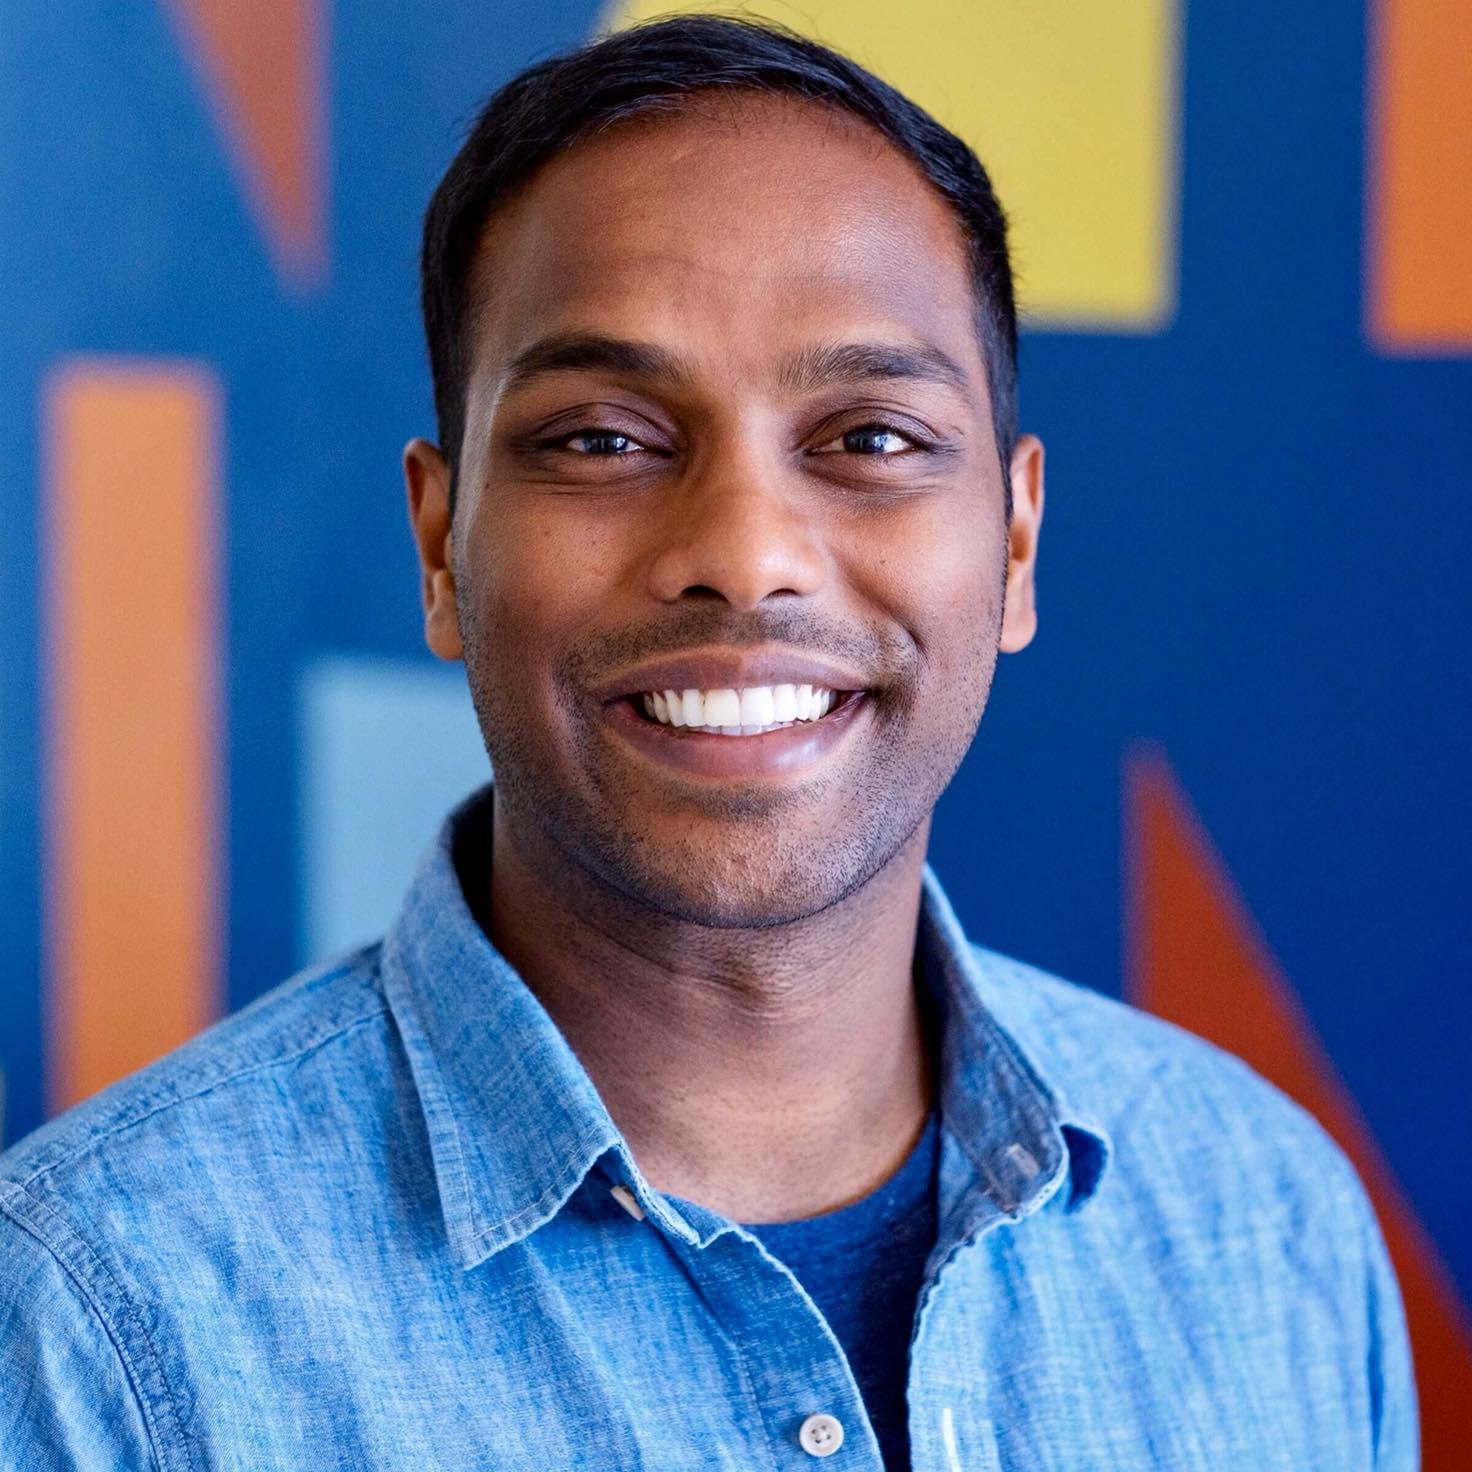 Karthik Menta   VP of Venture Capital  TBD; formerly Dorm Room Fund, Accenture; Univ. of Maryland